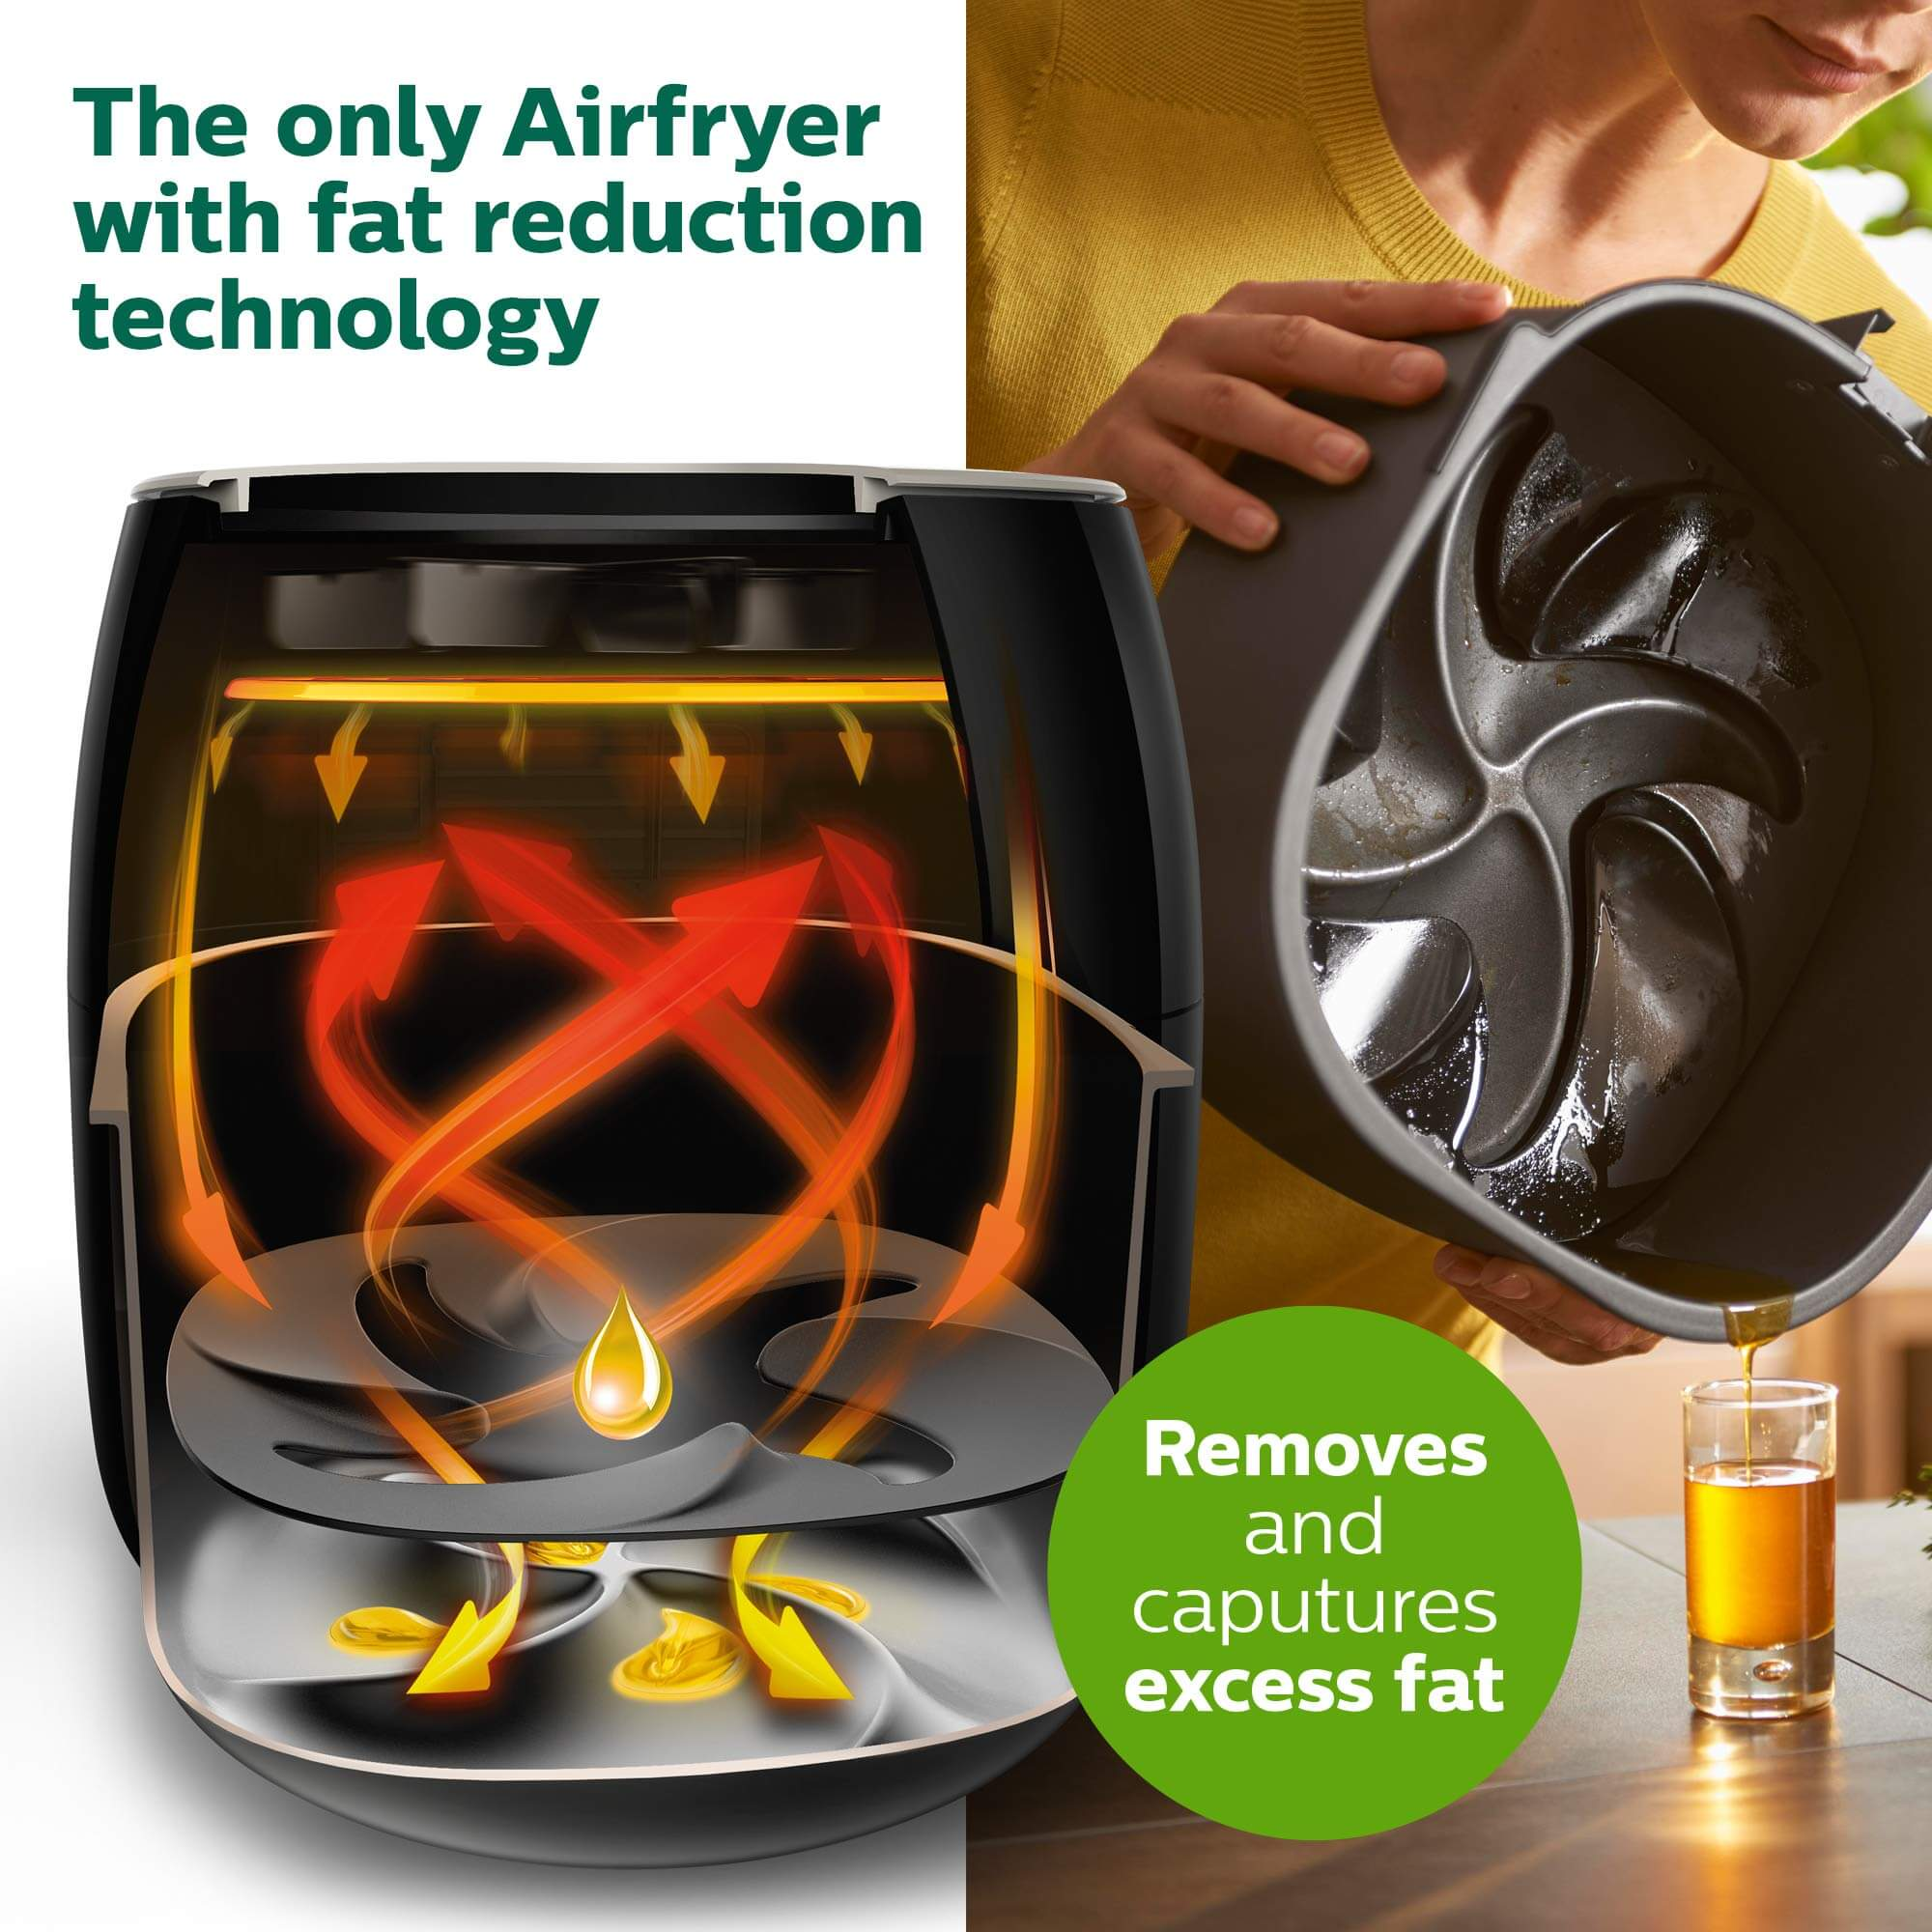 Philips Premium Airfryer XXL, philips air fryer, philips airfryer xxl, philips air fryer reviews, best air fryer on the market, best air fryer oven 2020, what are the best foods to cook in an air fryer, best air fryer reviews, Best commercial air fryer